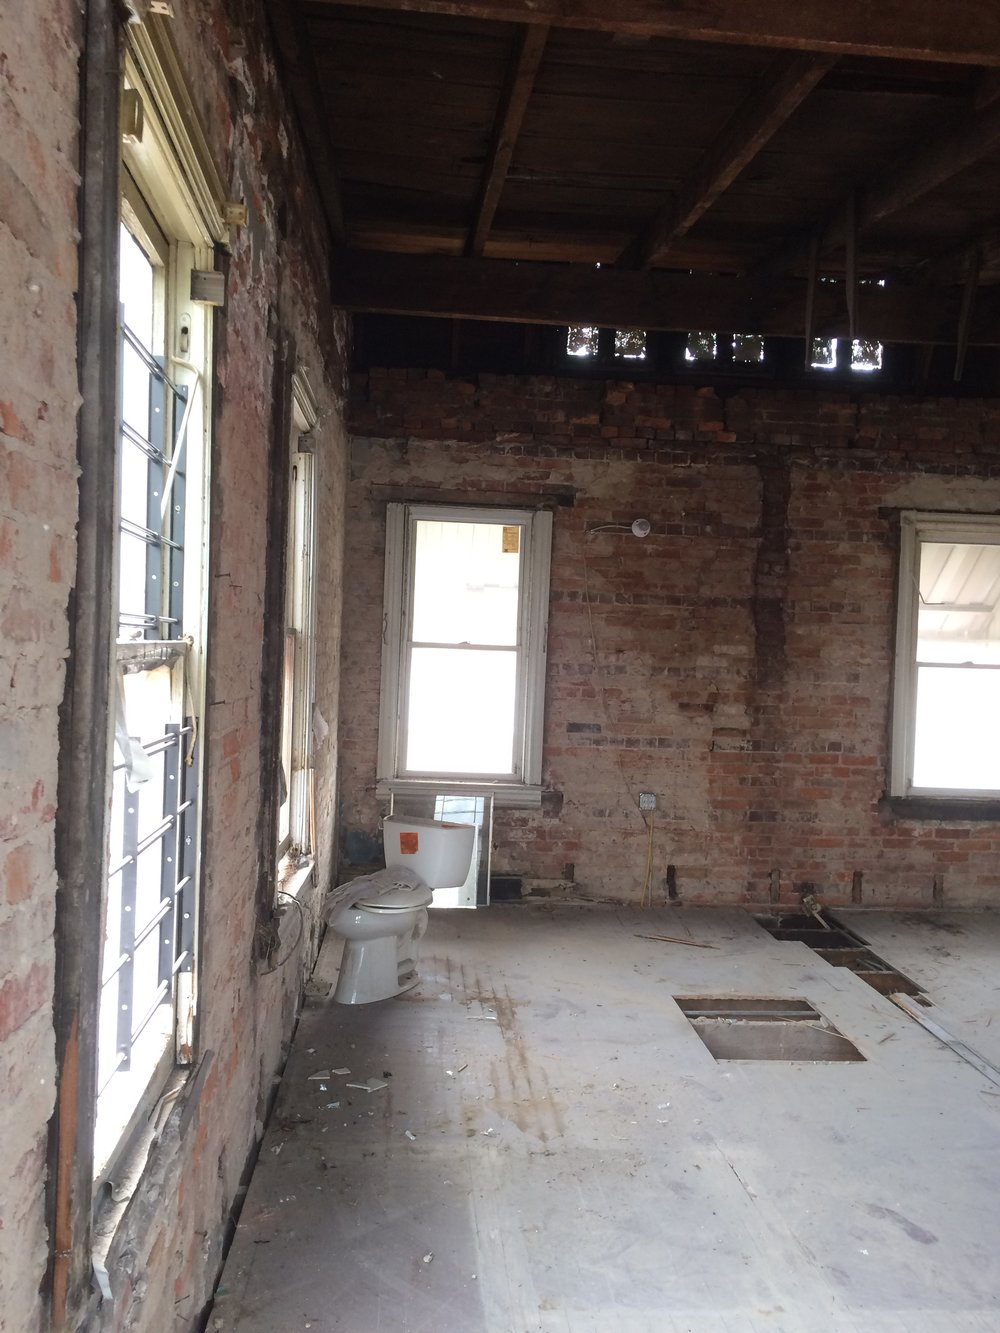 View of interior after removal of walls and finishes